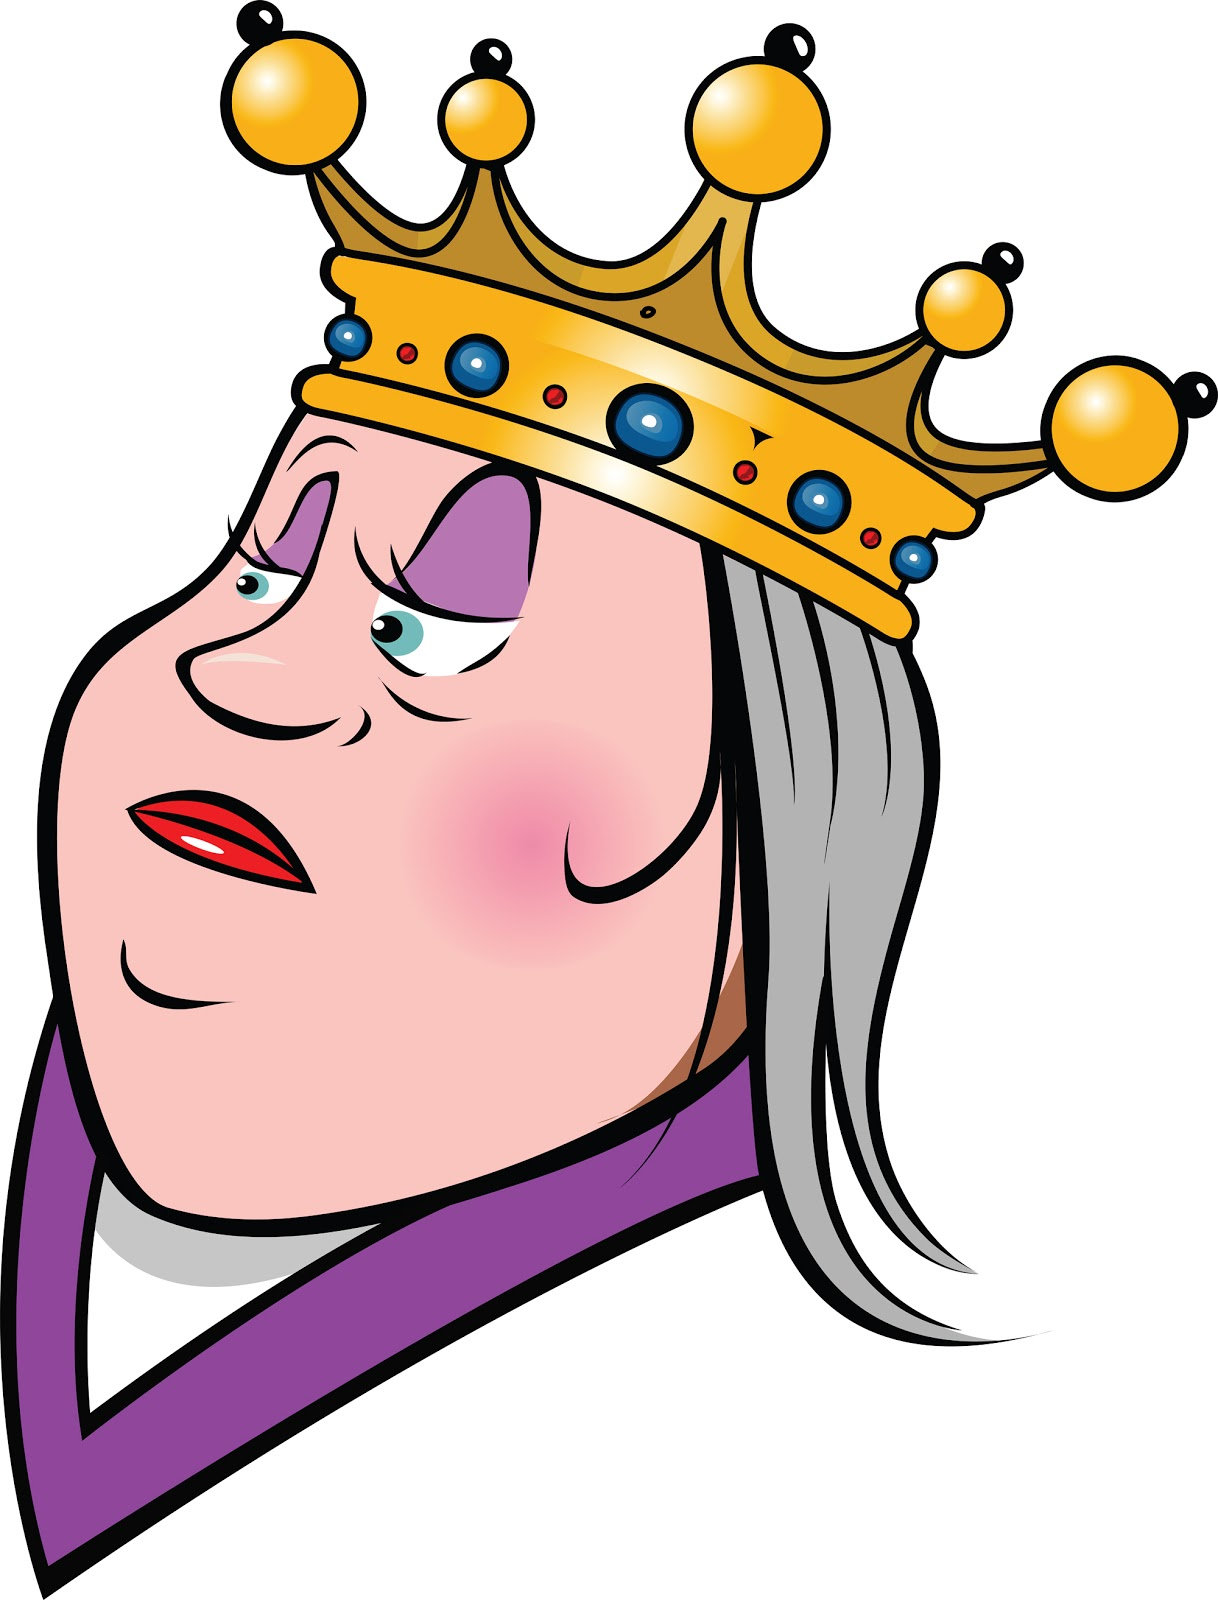 Free animated cliparts download. Queen clipart old queen